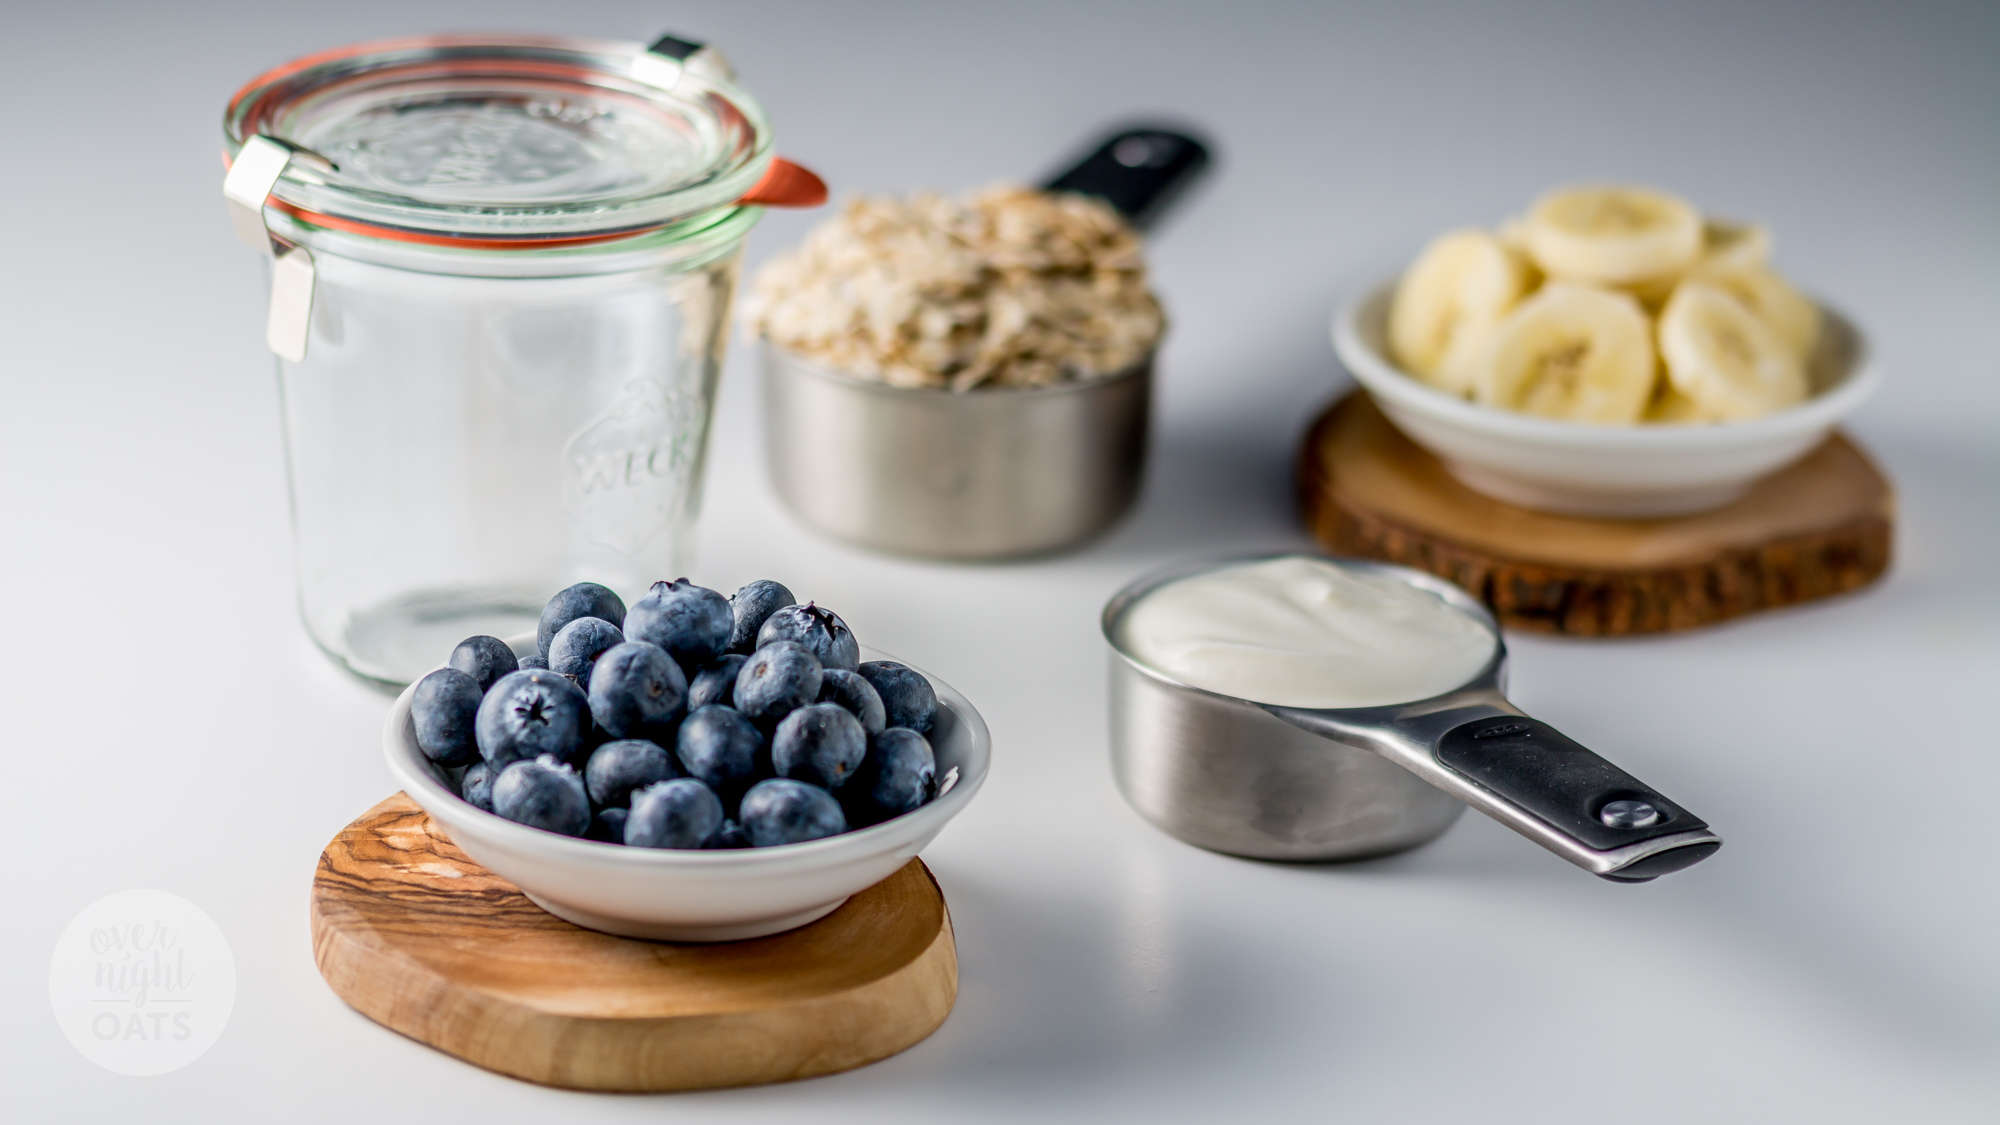 Blueberry and Banana Overnight Oats